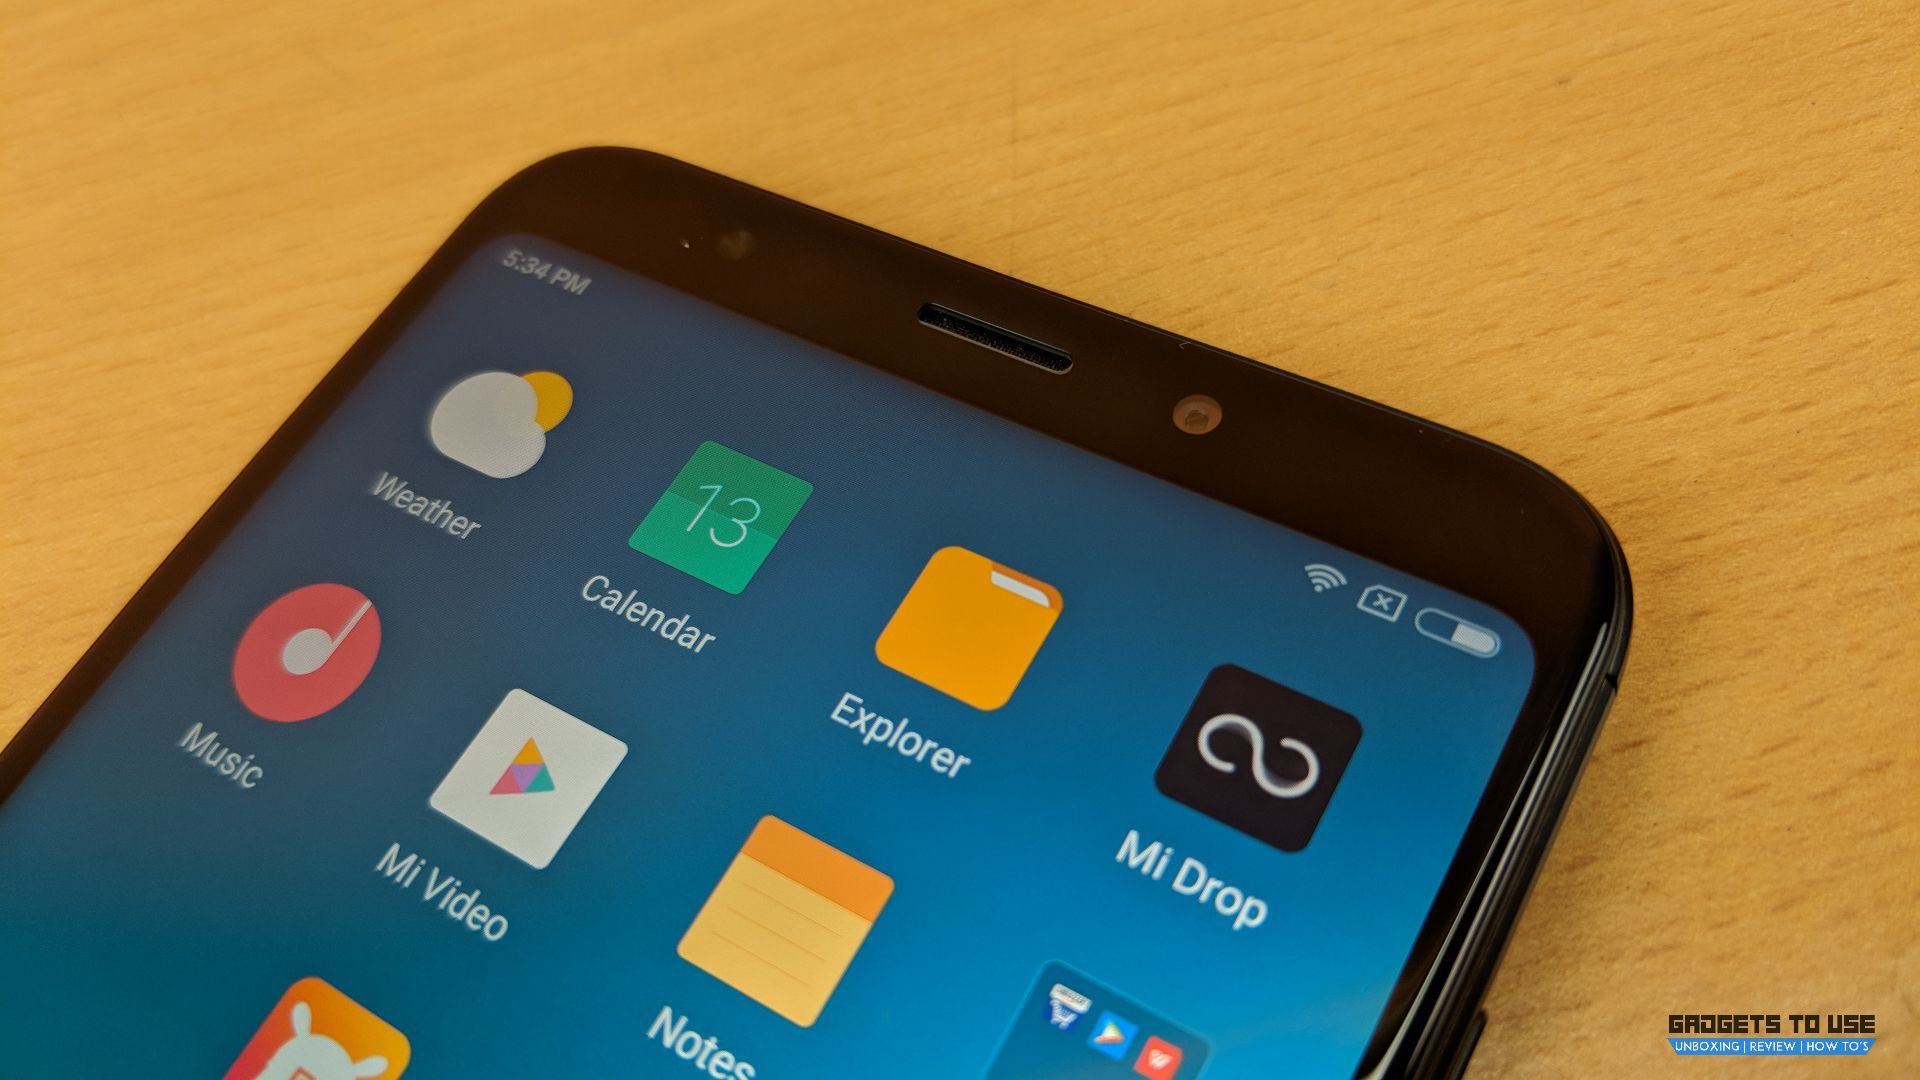 Xiaomi Redmi Note 5 With 18 9 Display And Front Led Flash: 6 Reasons To Buy The New Xiaomi Redmi Note 5